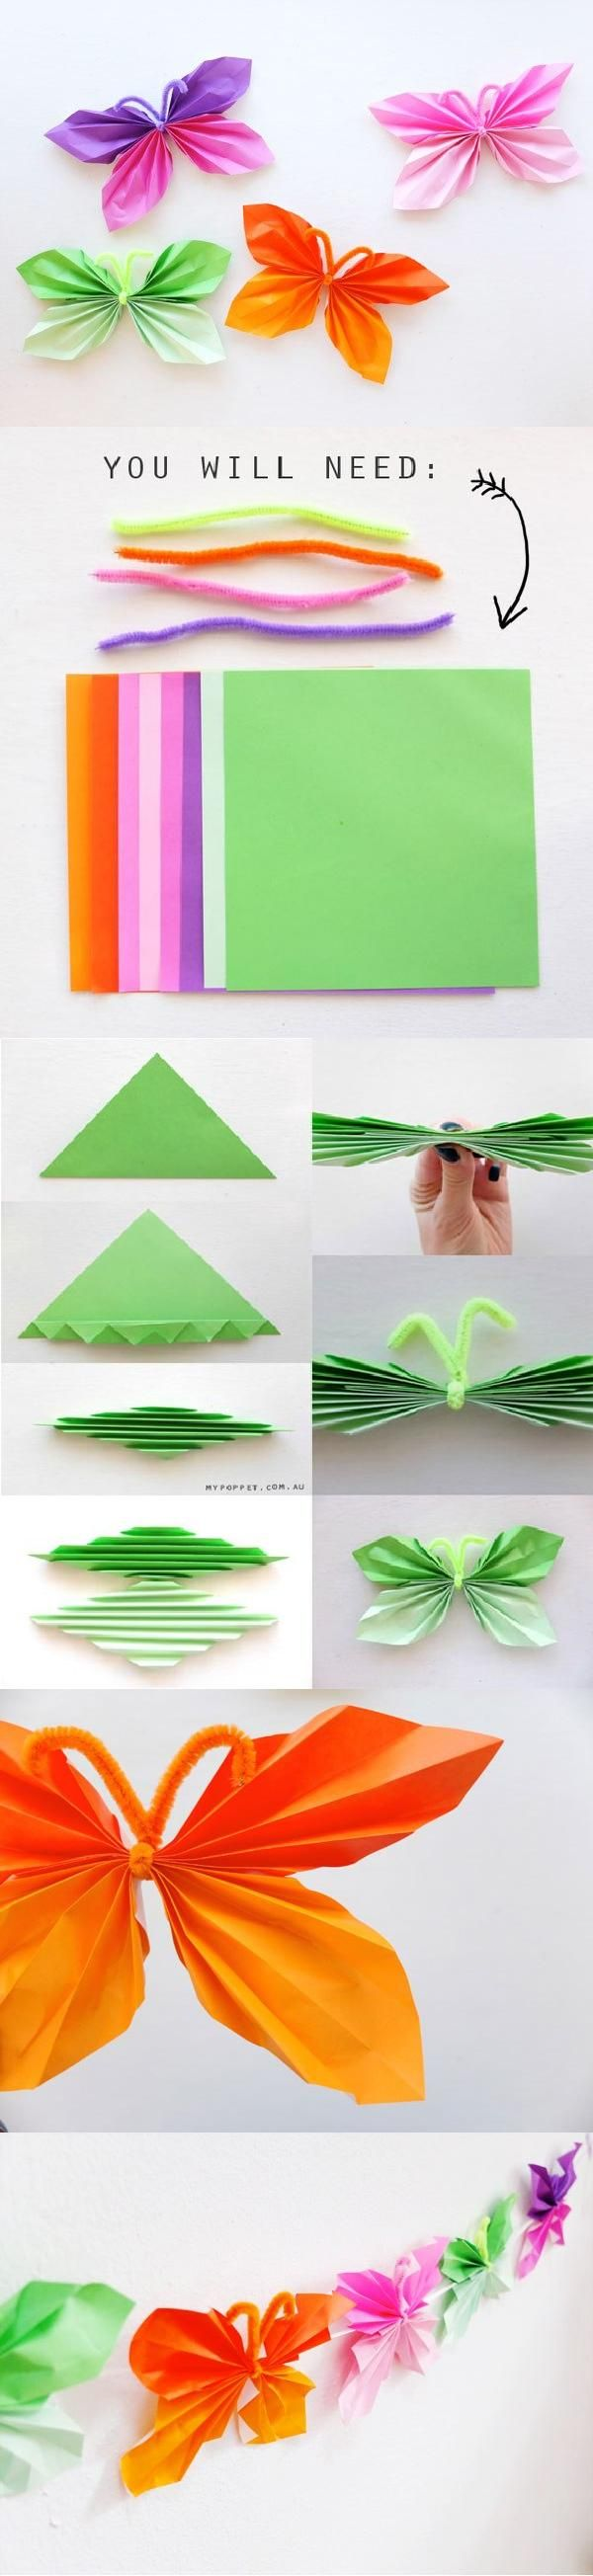 best do it yourself images on pinterest creative ideas